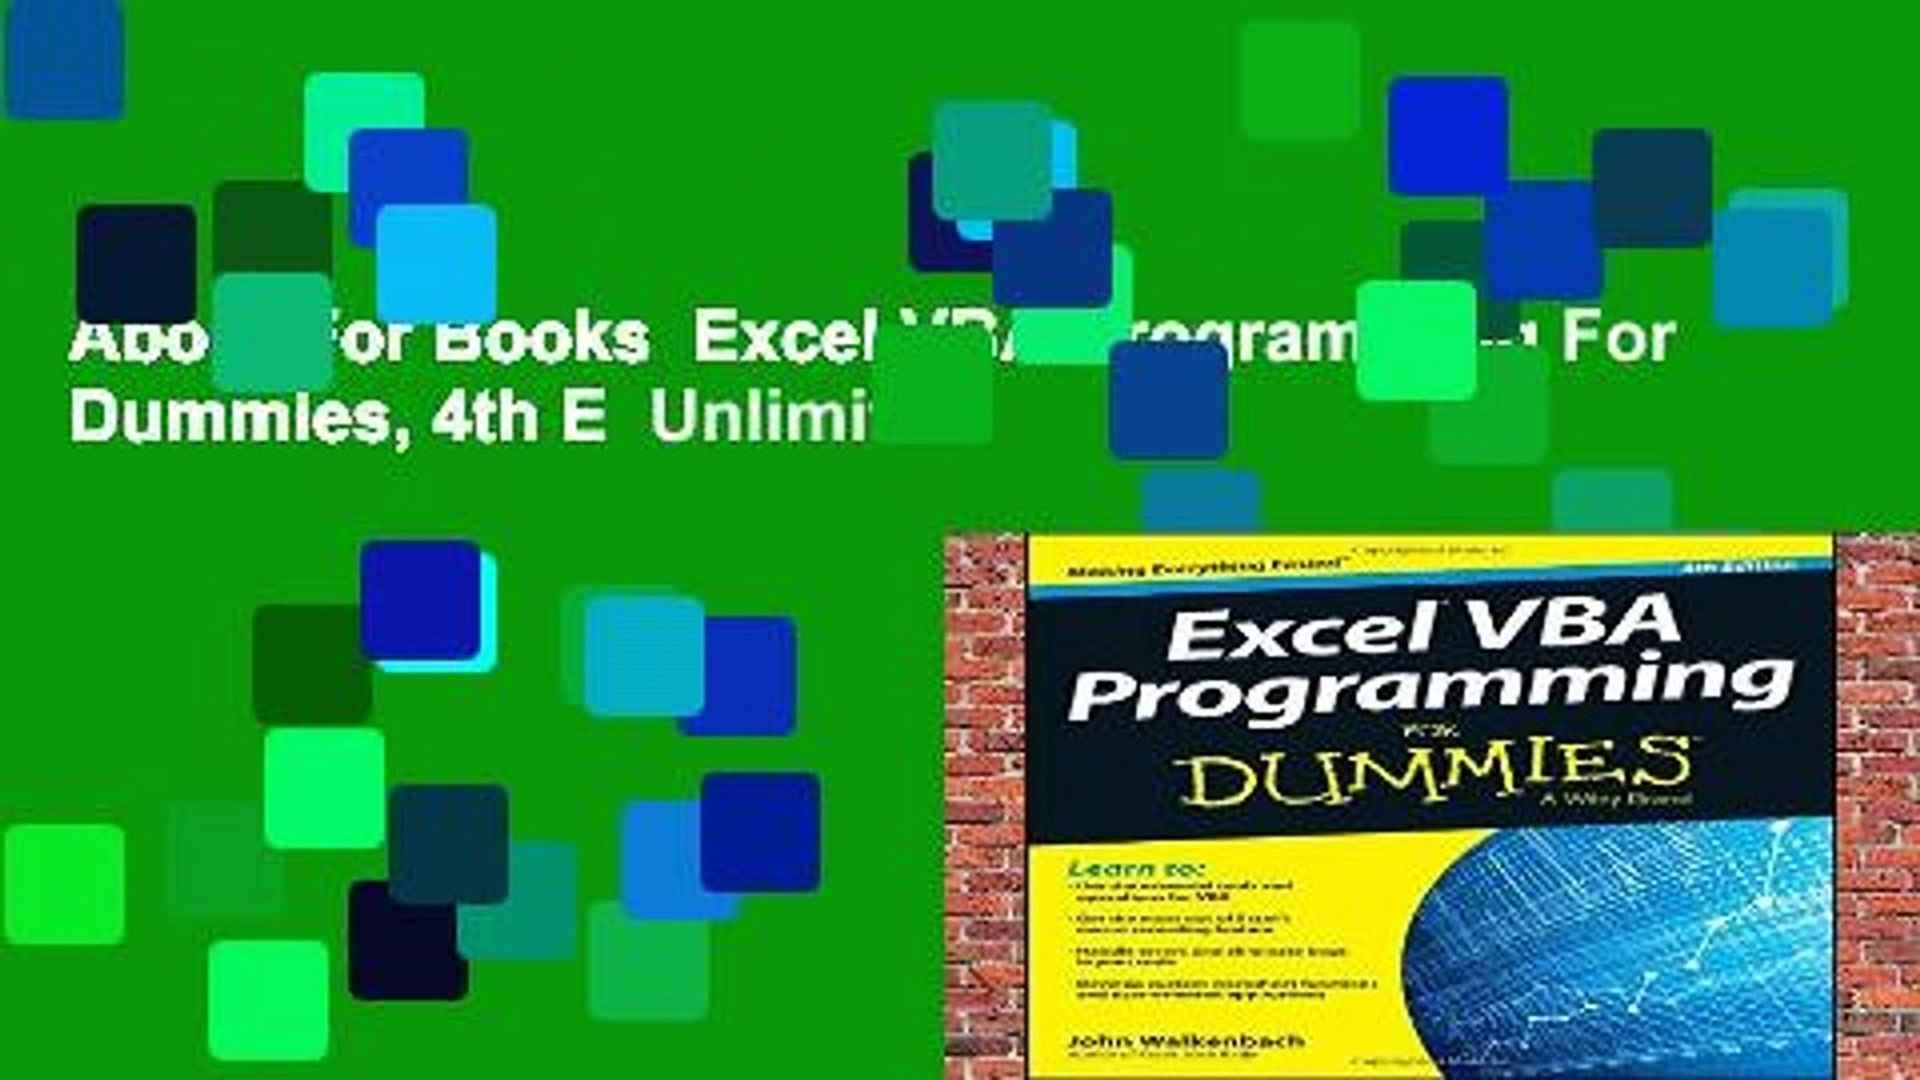 About For Books Excel VBA Programming For Dummies, 4th E Unlimited